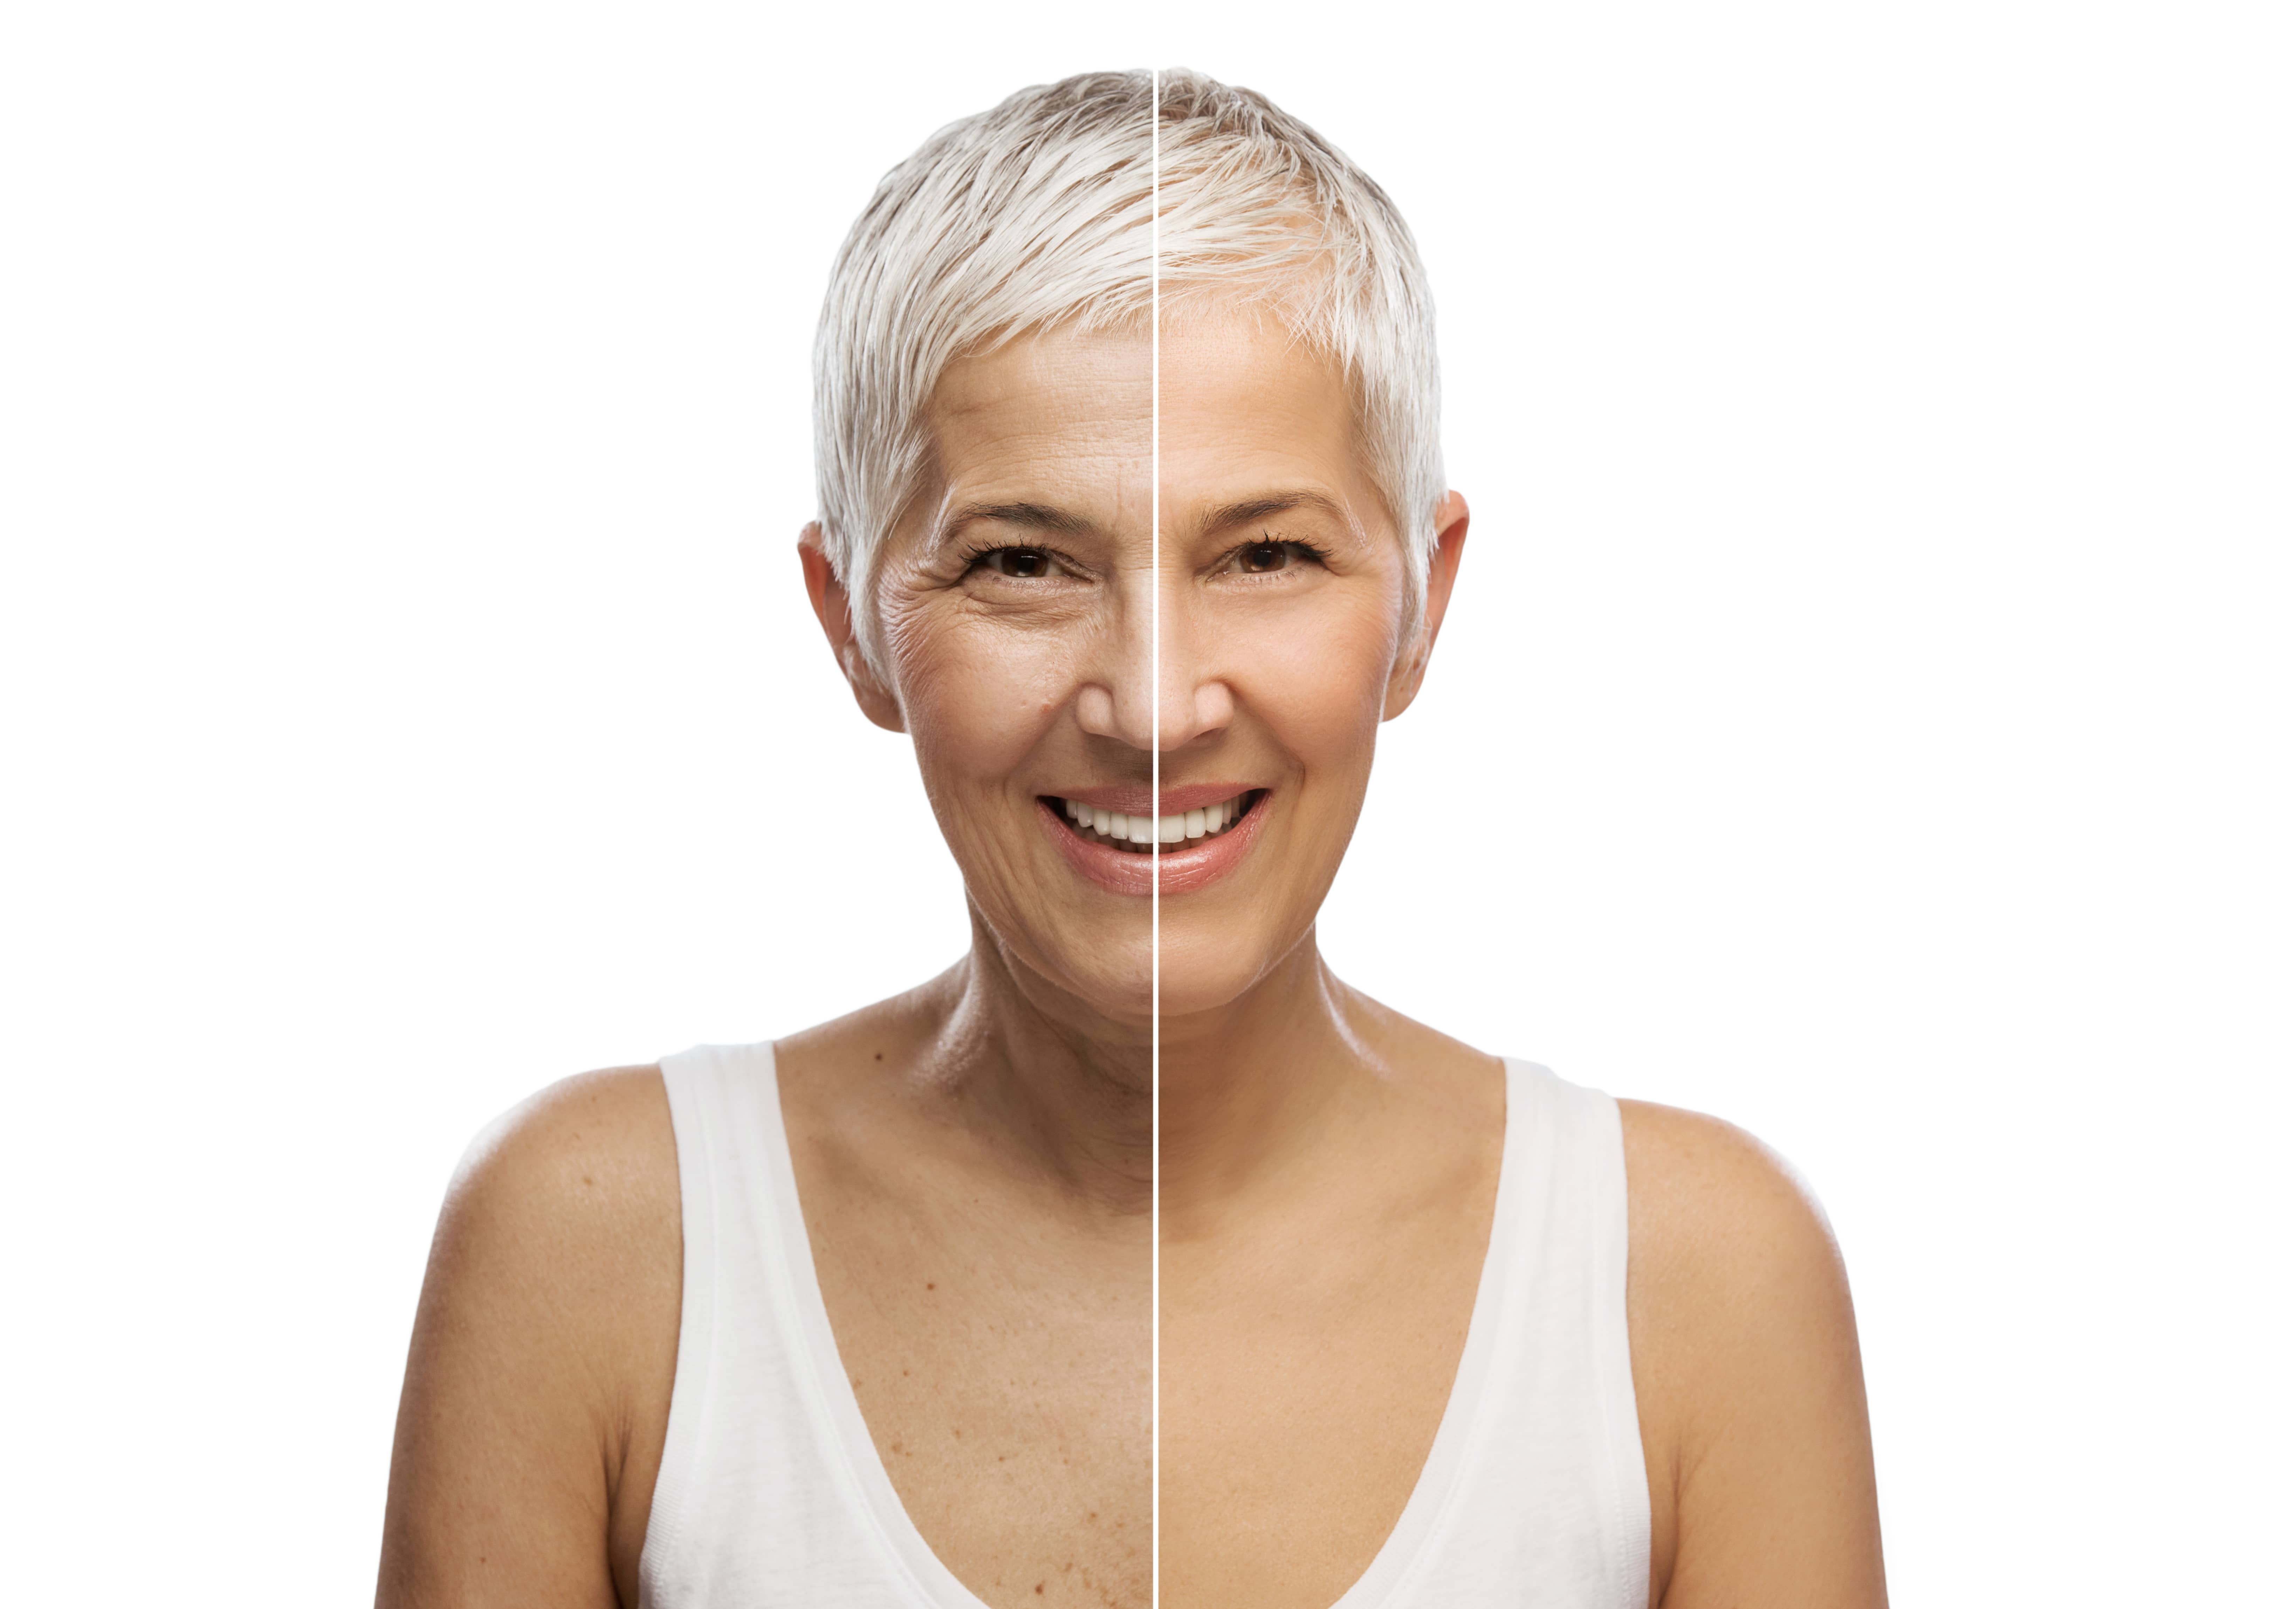 A Quick Look at Botox and Its Uses